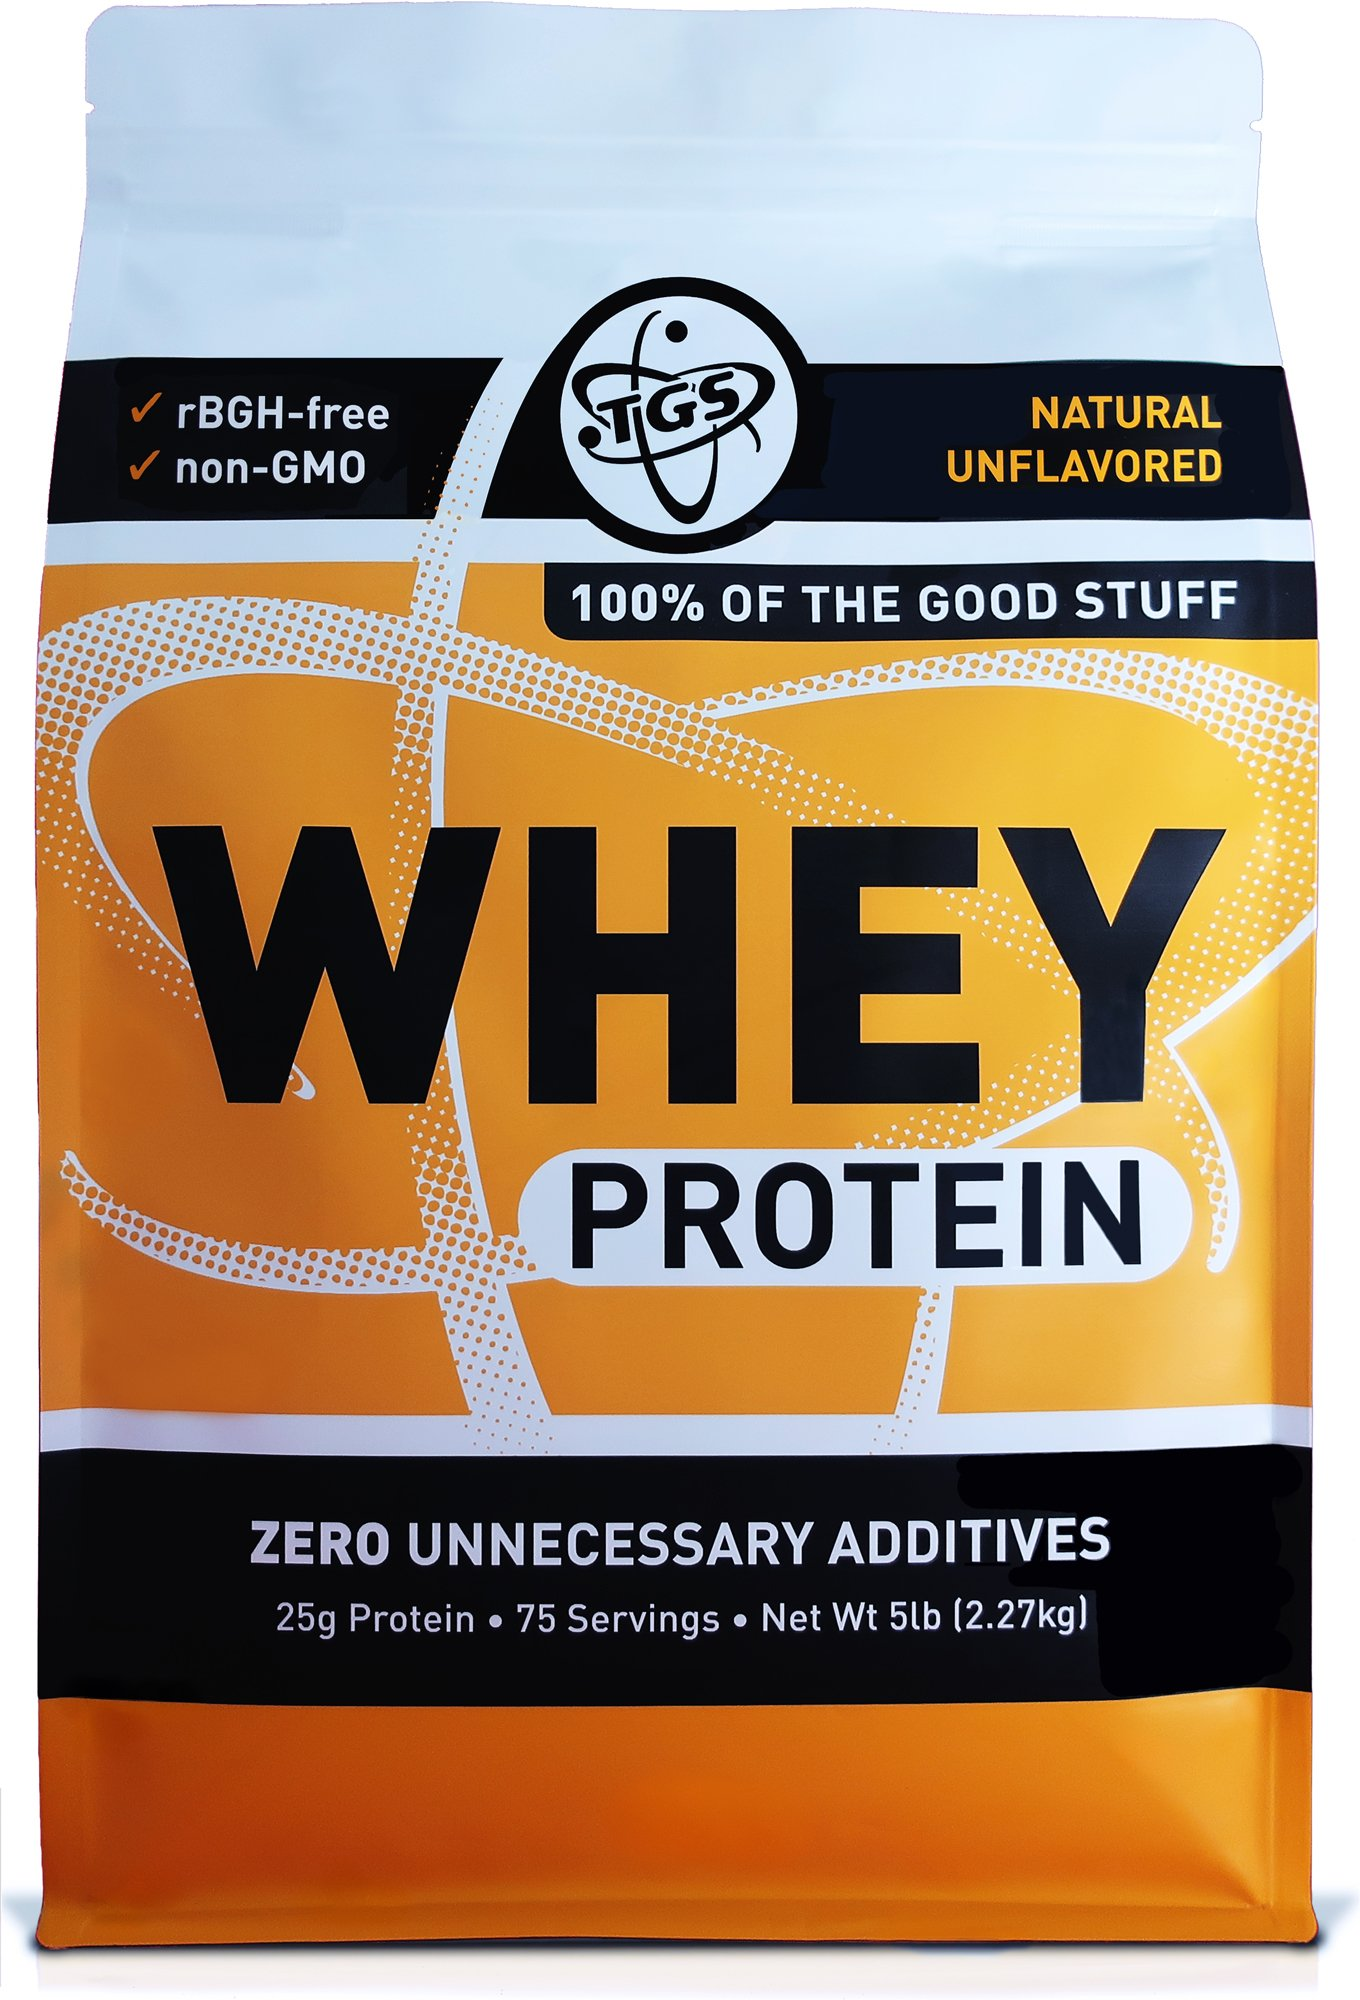 TGS All Natural 100% Whey Protein Powder 5lb - Unflavored, Undenatured, Unsweetened - Low Carb, Soy Free, GMO Free by TGS Nutrition